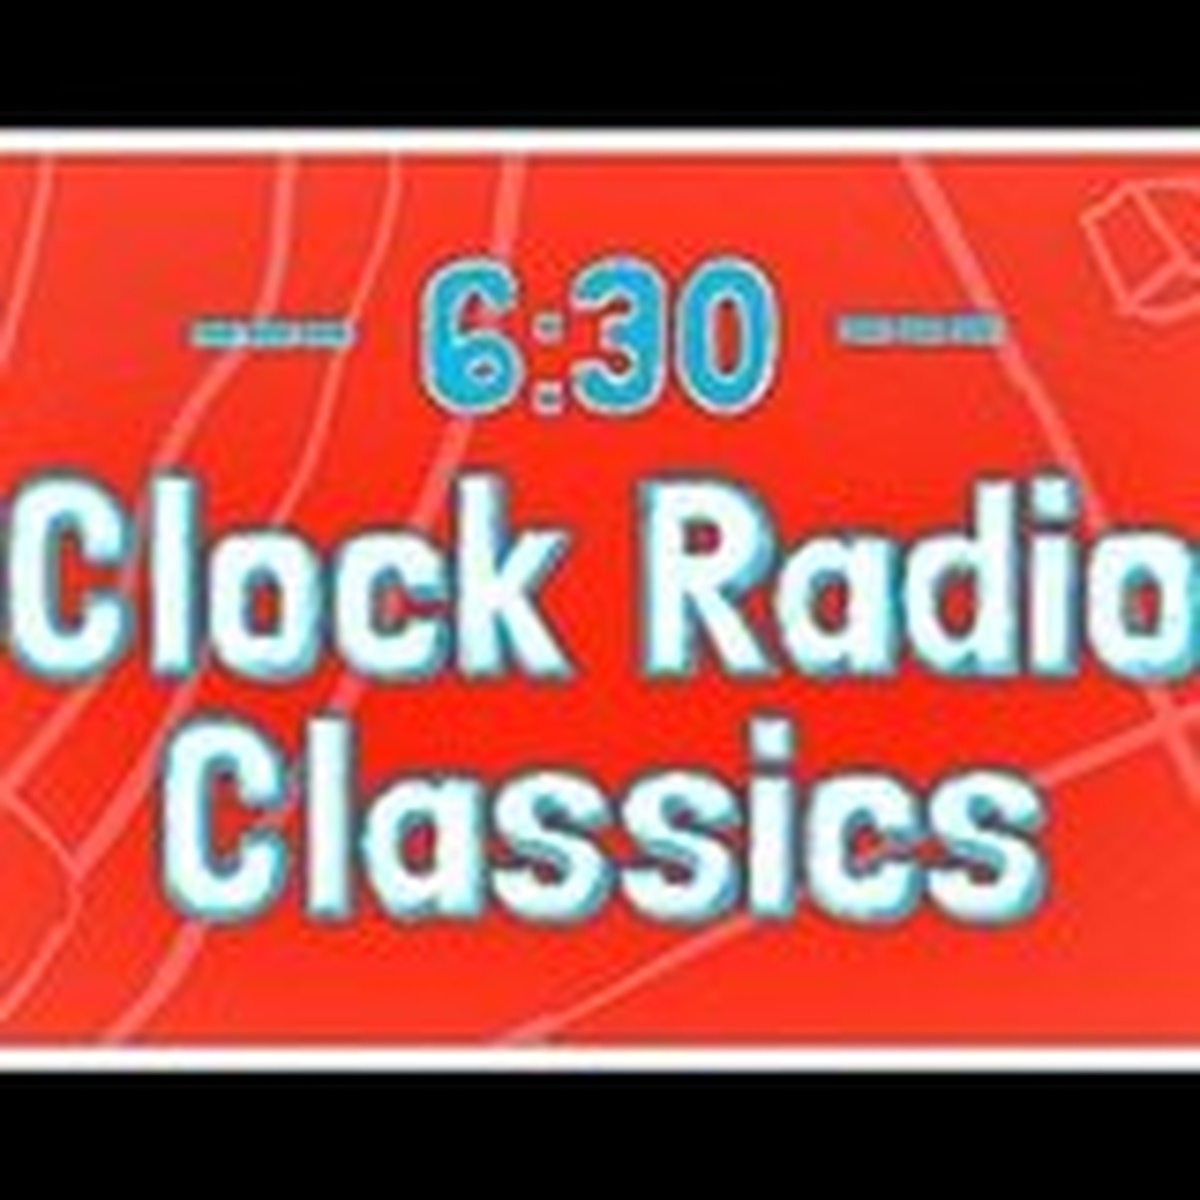 Bob And Doug Mckenzie 12 Days Of Christmas.6 30 Clock Radio Classic Bob And Doug Mckenzie 12 Days